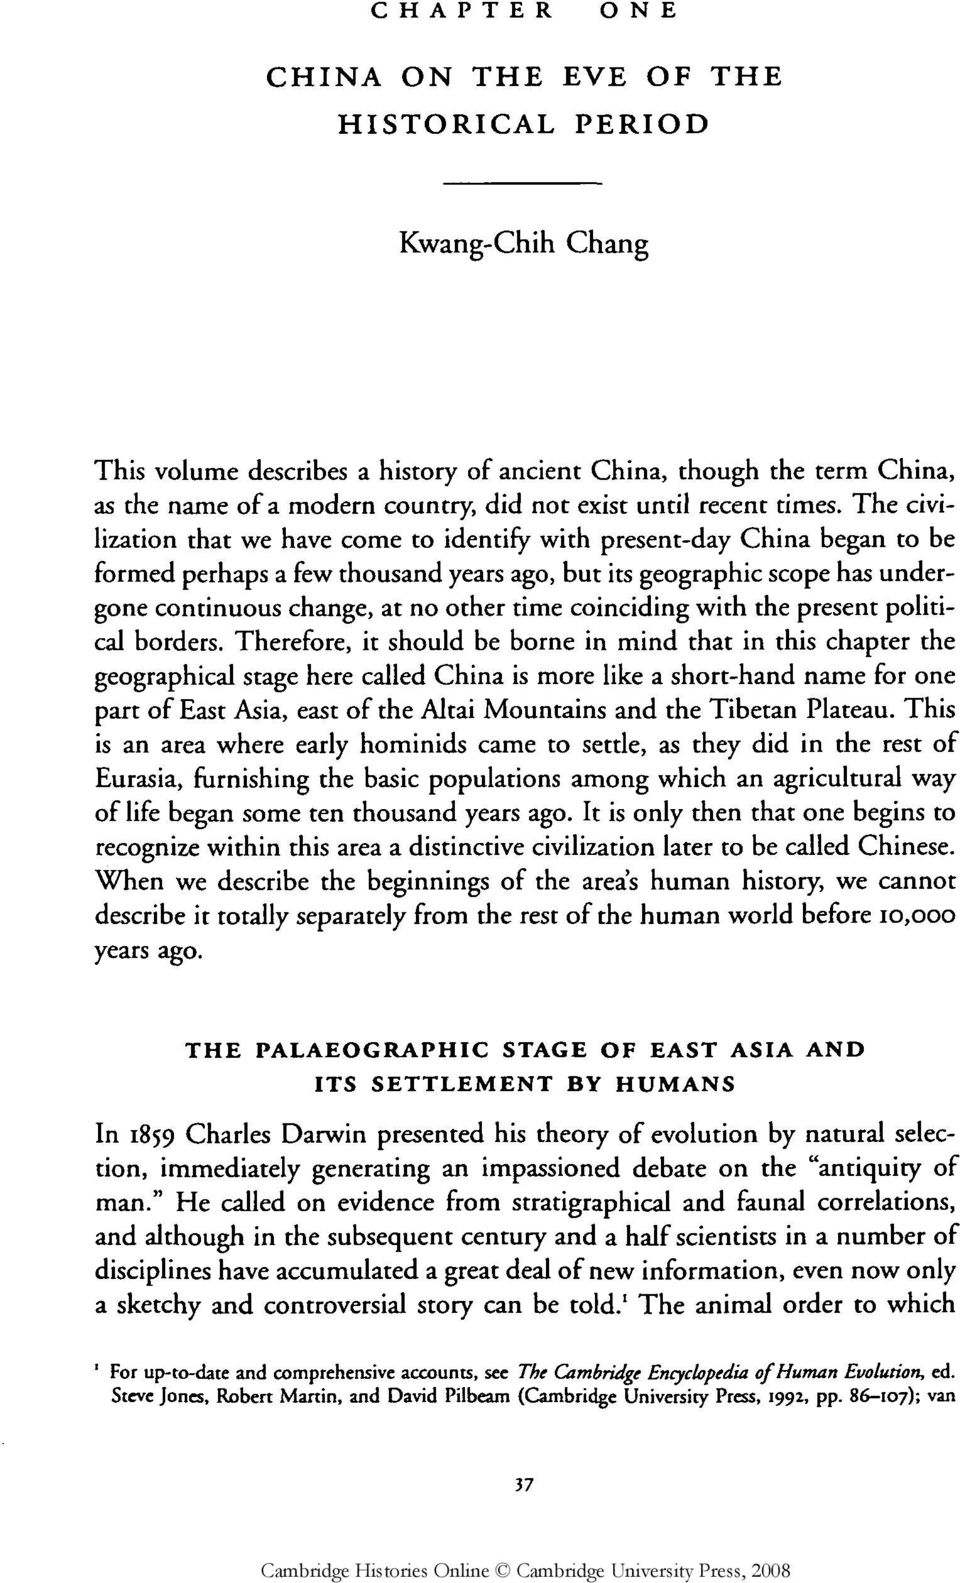 The civilization that we have come to identify with present-day China began to be formed perhaps a few thousand years ago, but its geographic scope has undergone continuous change, at no other time